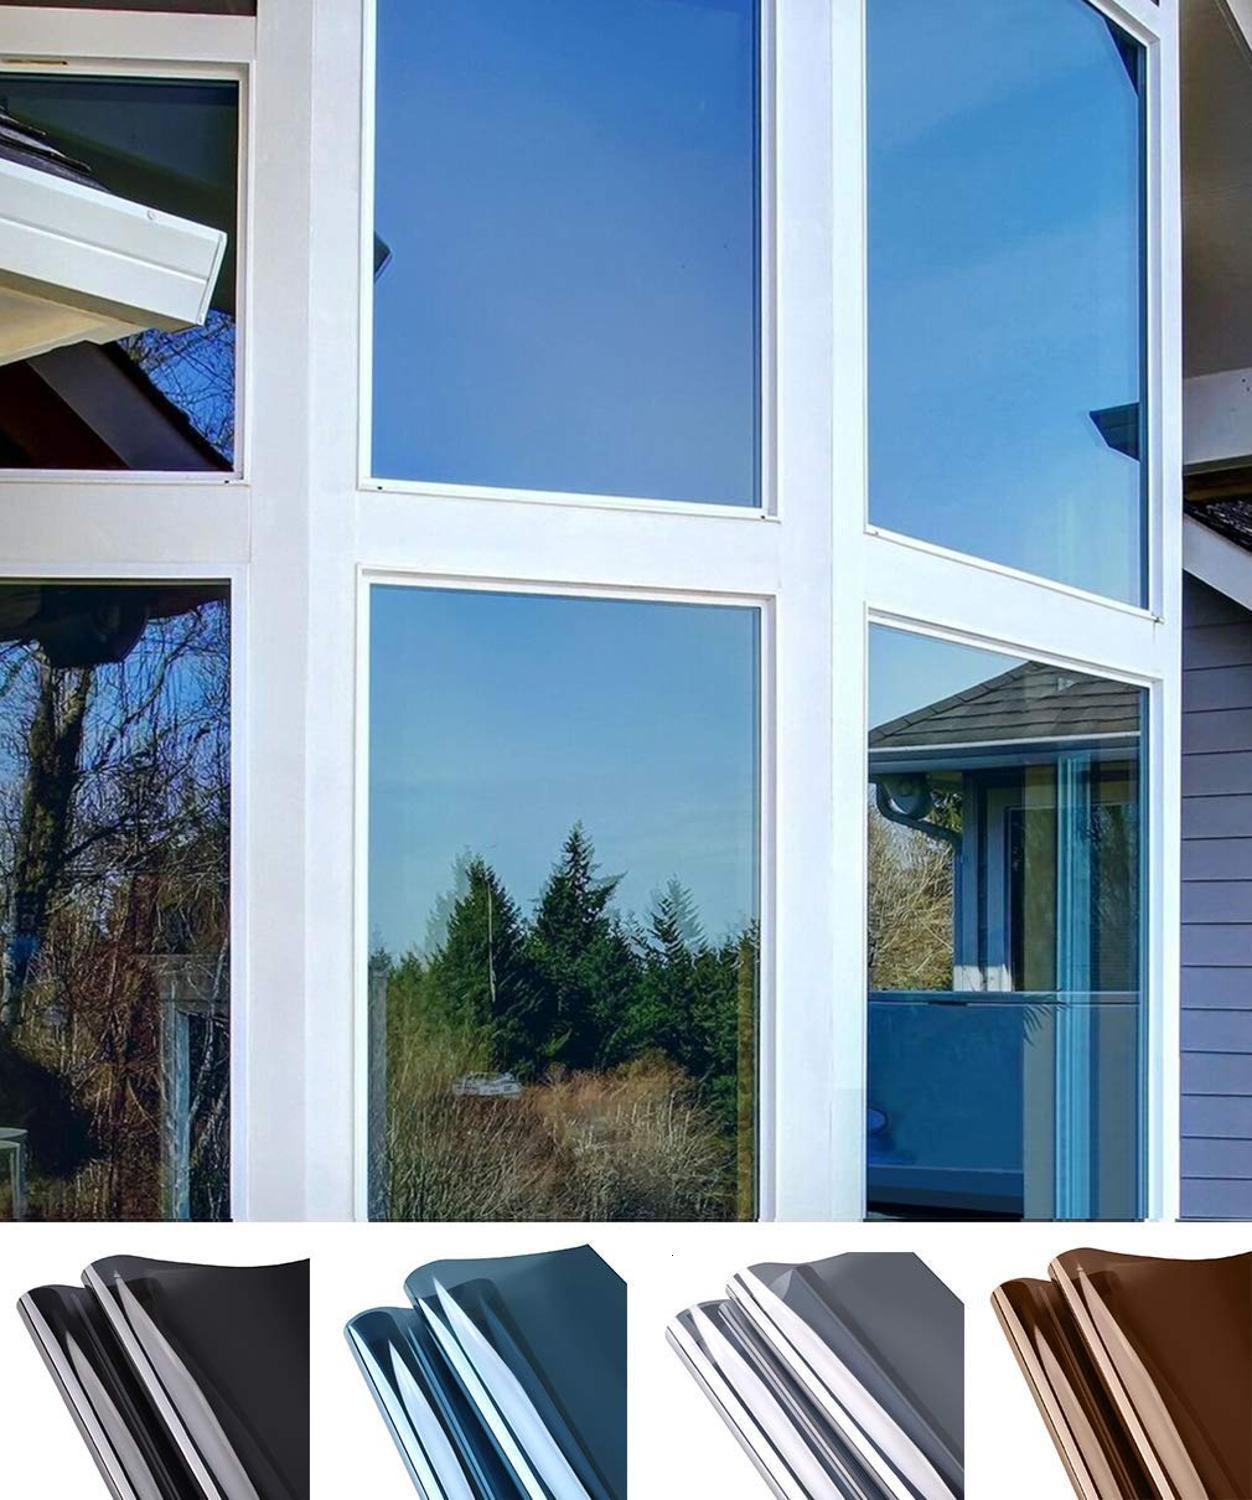 Window Privacy Film Sun Blocking Mirror Reflective Tint One Way Heat Control Vinyl Anti UV Window Stickers for Home and Office